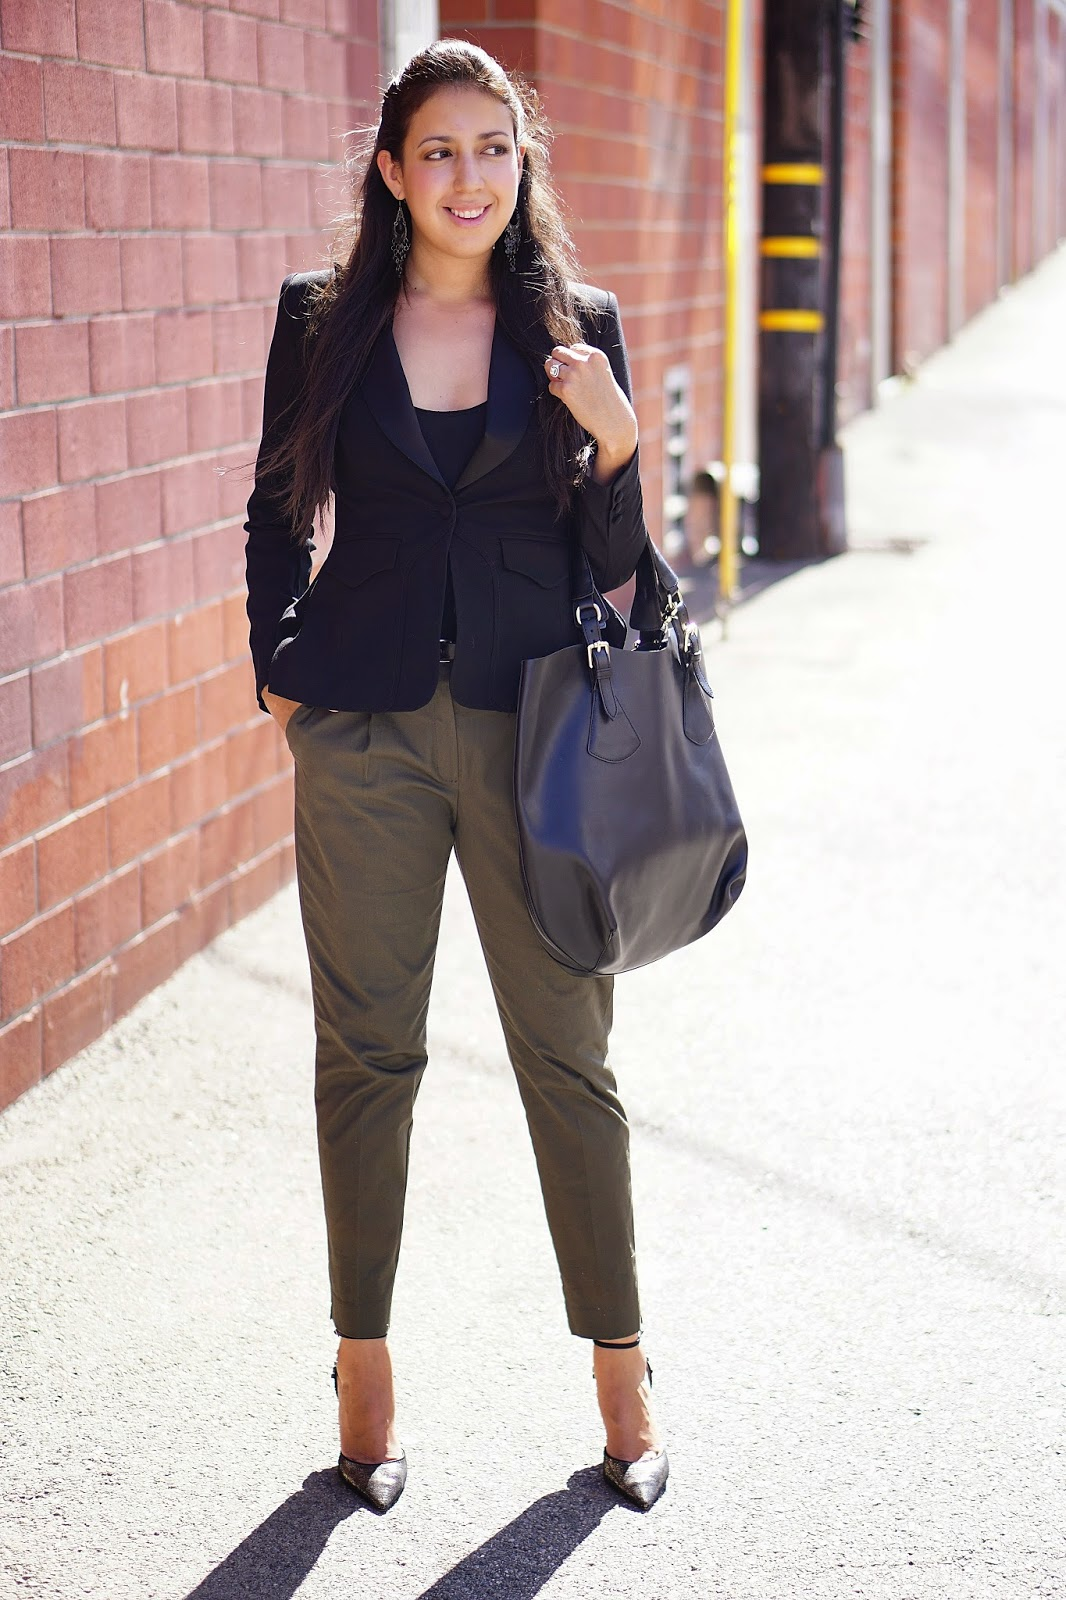 Foreign Exchange, Altuzarra for Target Black Blazer, MNG by Mango Olive Pants, JCPenney, Nina Shoes, Burlington Coat Factory, TJ Maxx, Black bucket bag, Fall Outfit Ideas